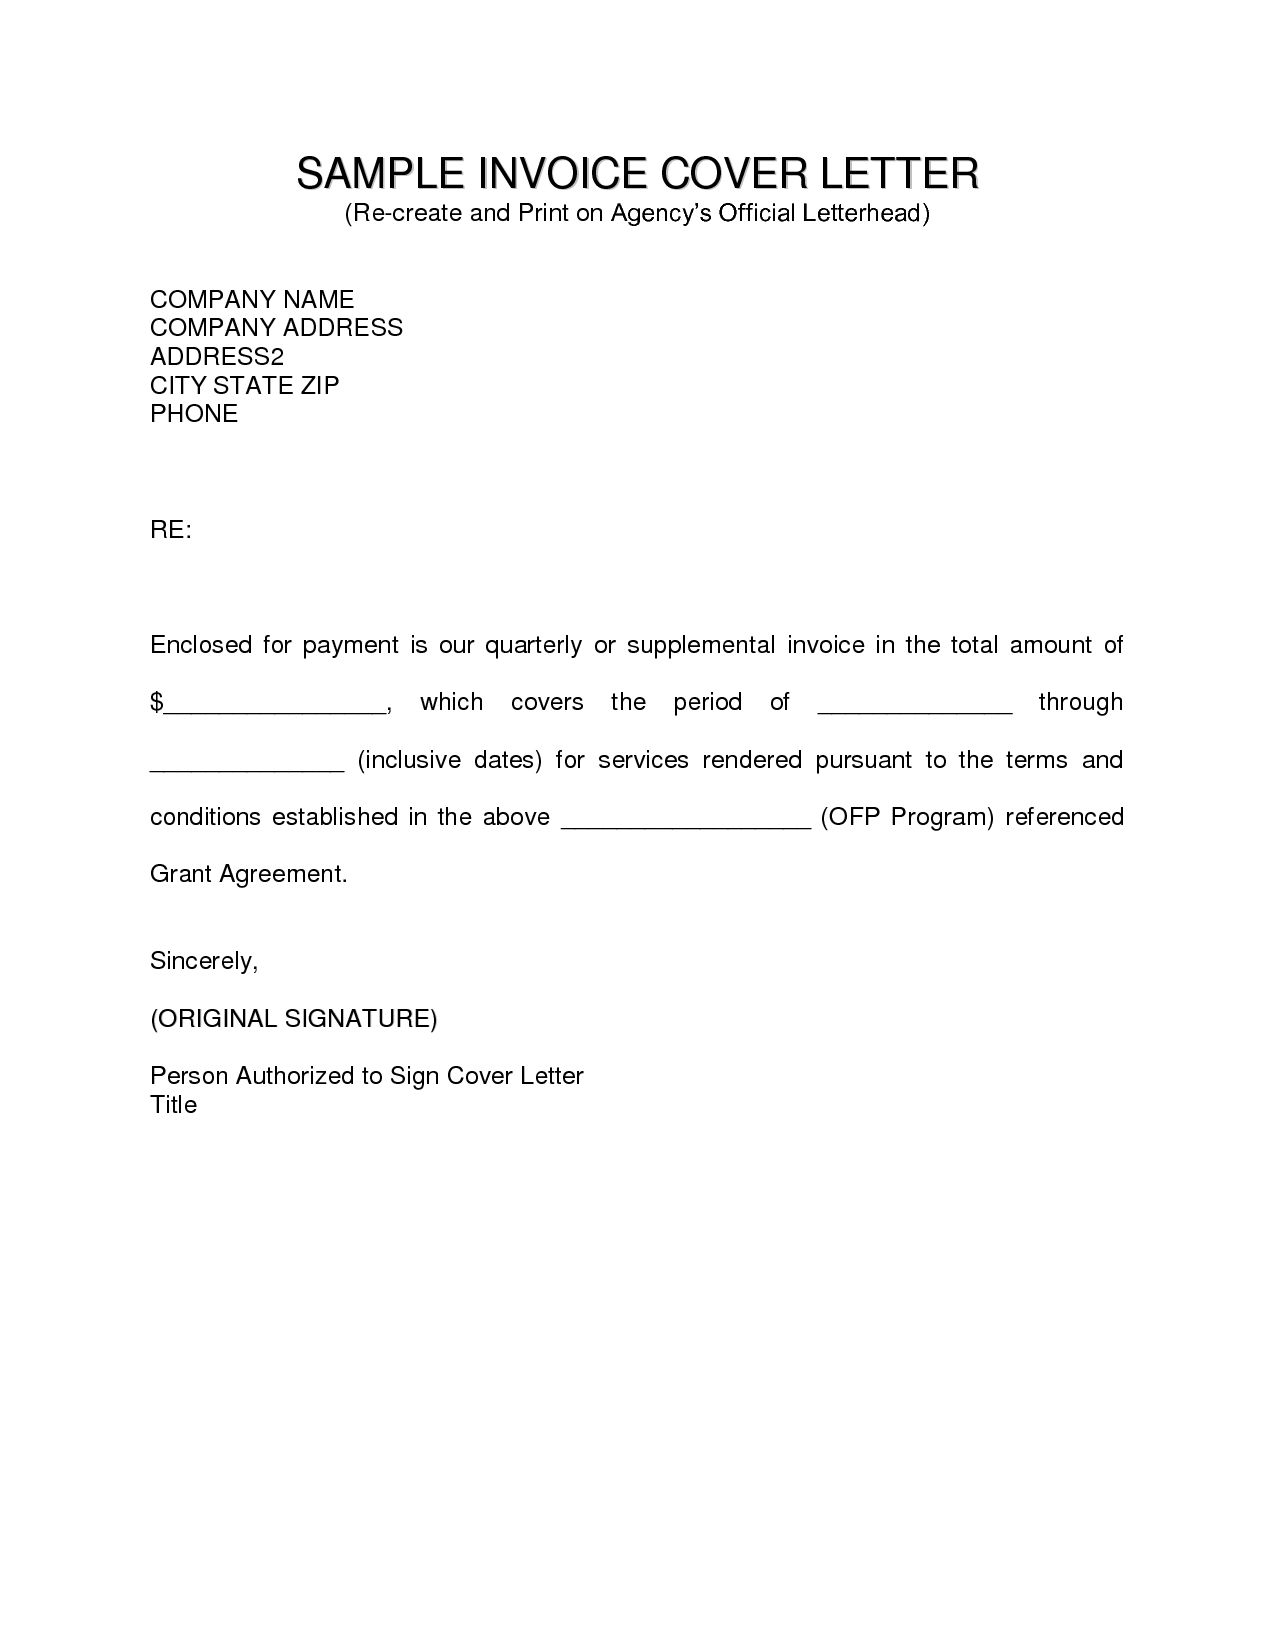 Sample Invoice Letter Grude Interpretomics Co